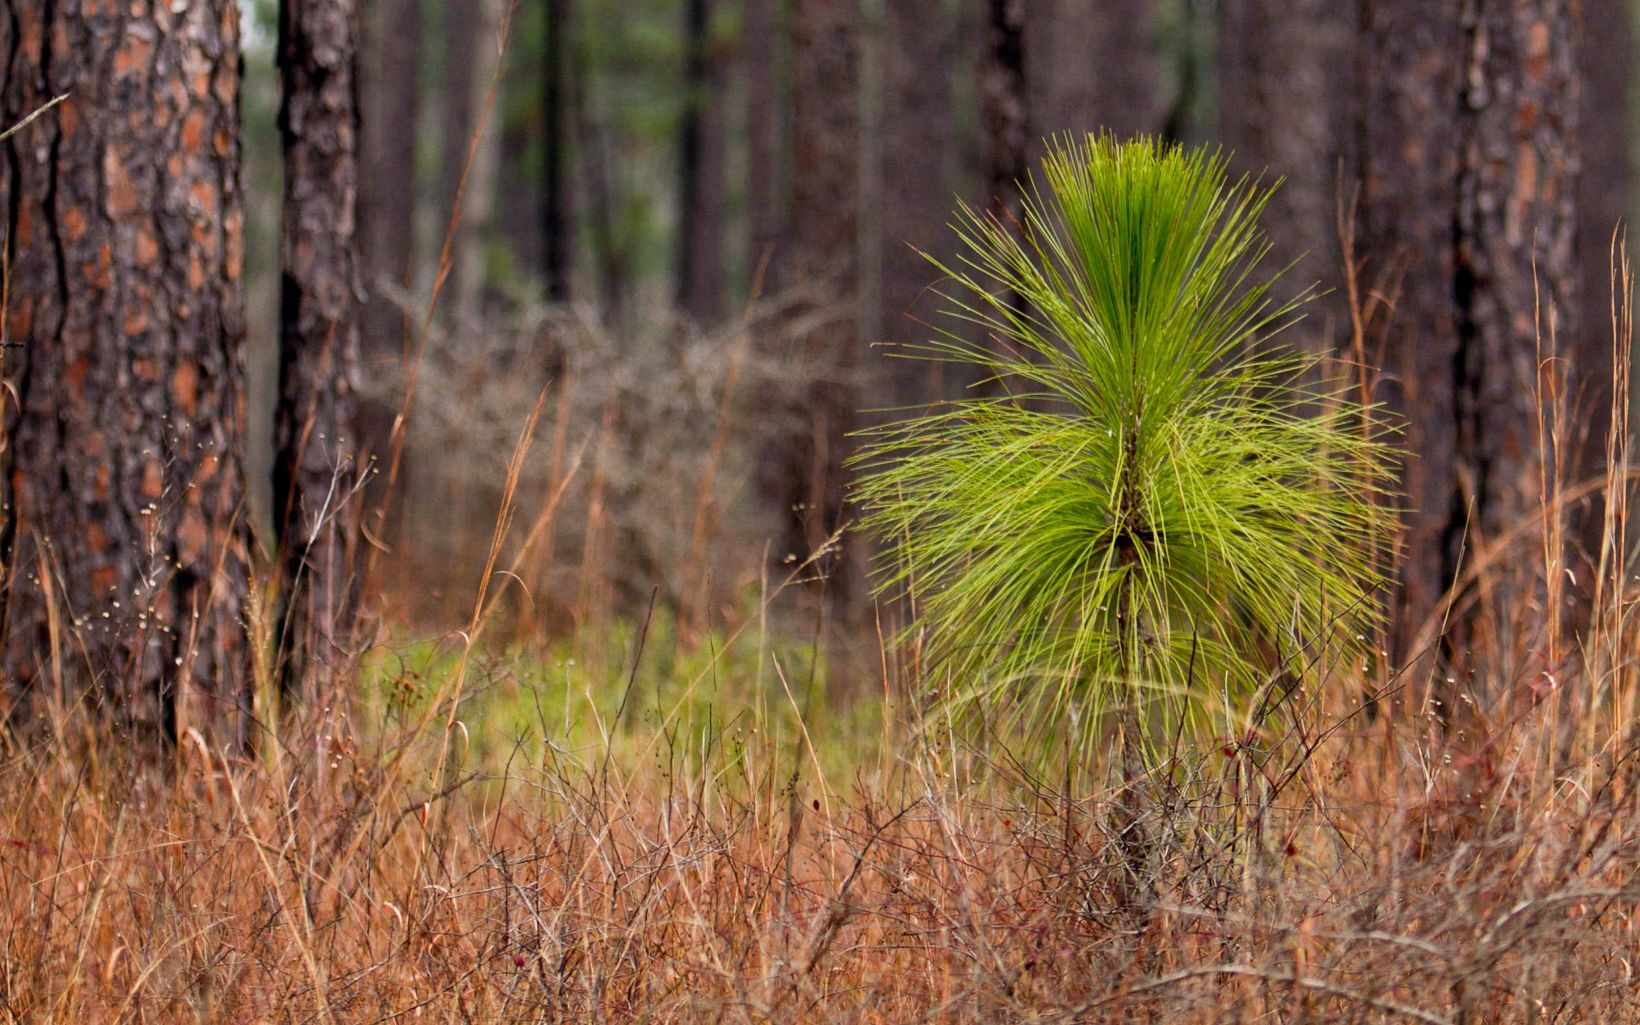 A longleaf seedling at the bottle brush stage in the middle of a mature forest. The bushy top of the seedling resembles a brush.